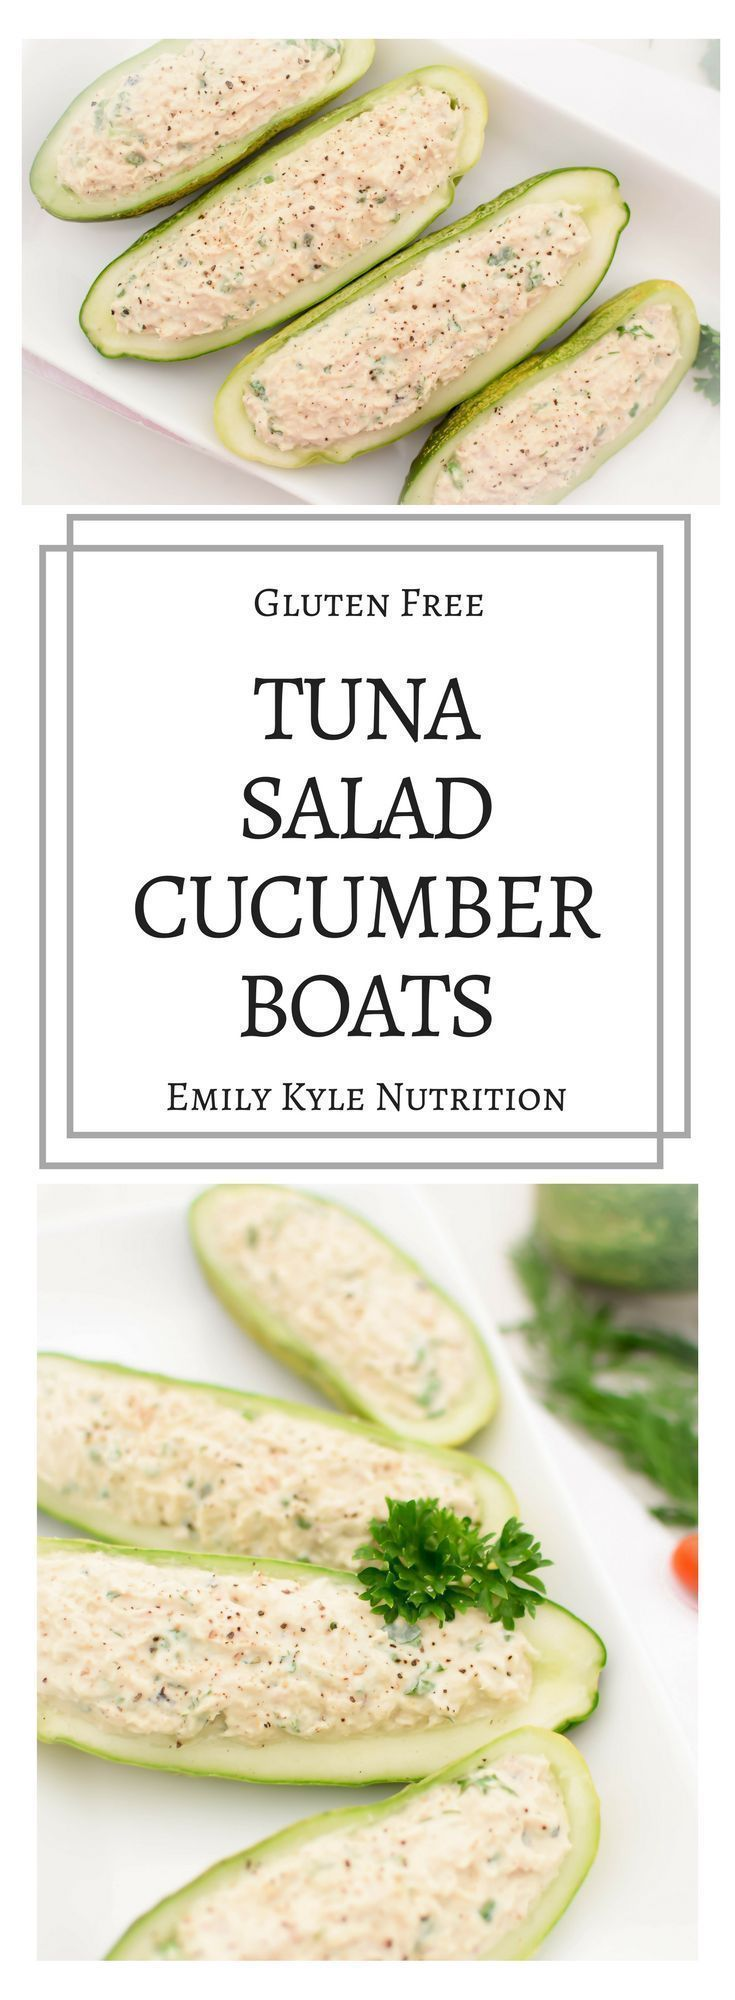 Enjoy a light and refreshing Tuna Salad Cucumber Boat while cutting down on calories and carbohydrates and savoring fresh, homegrown produce! paleo dinner tuna